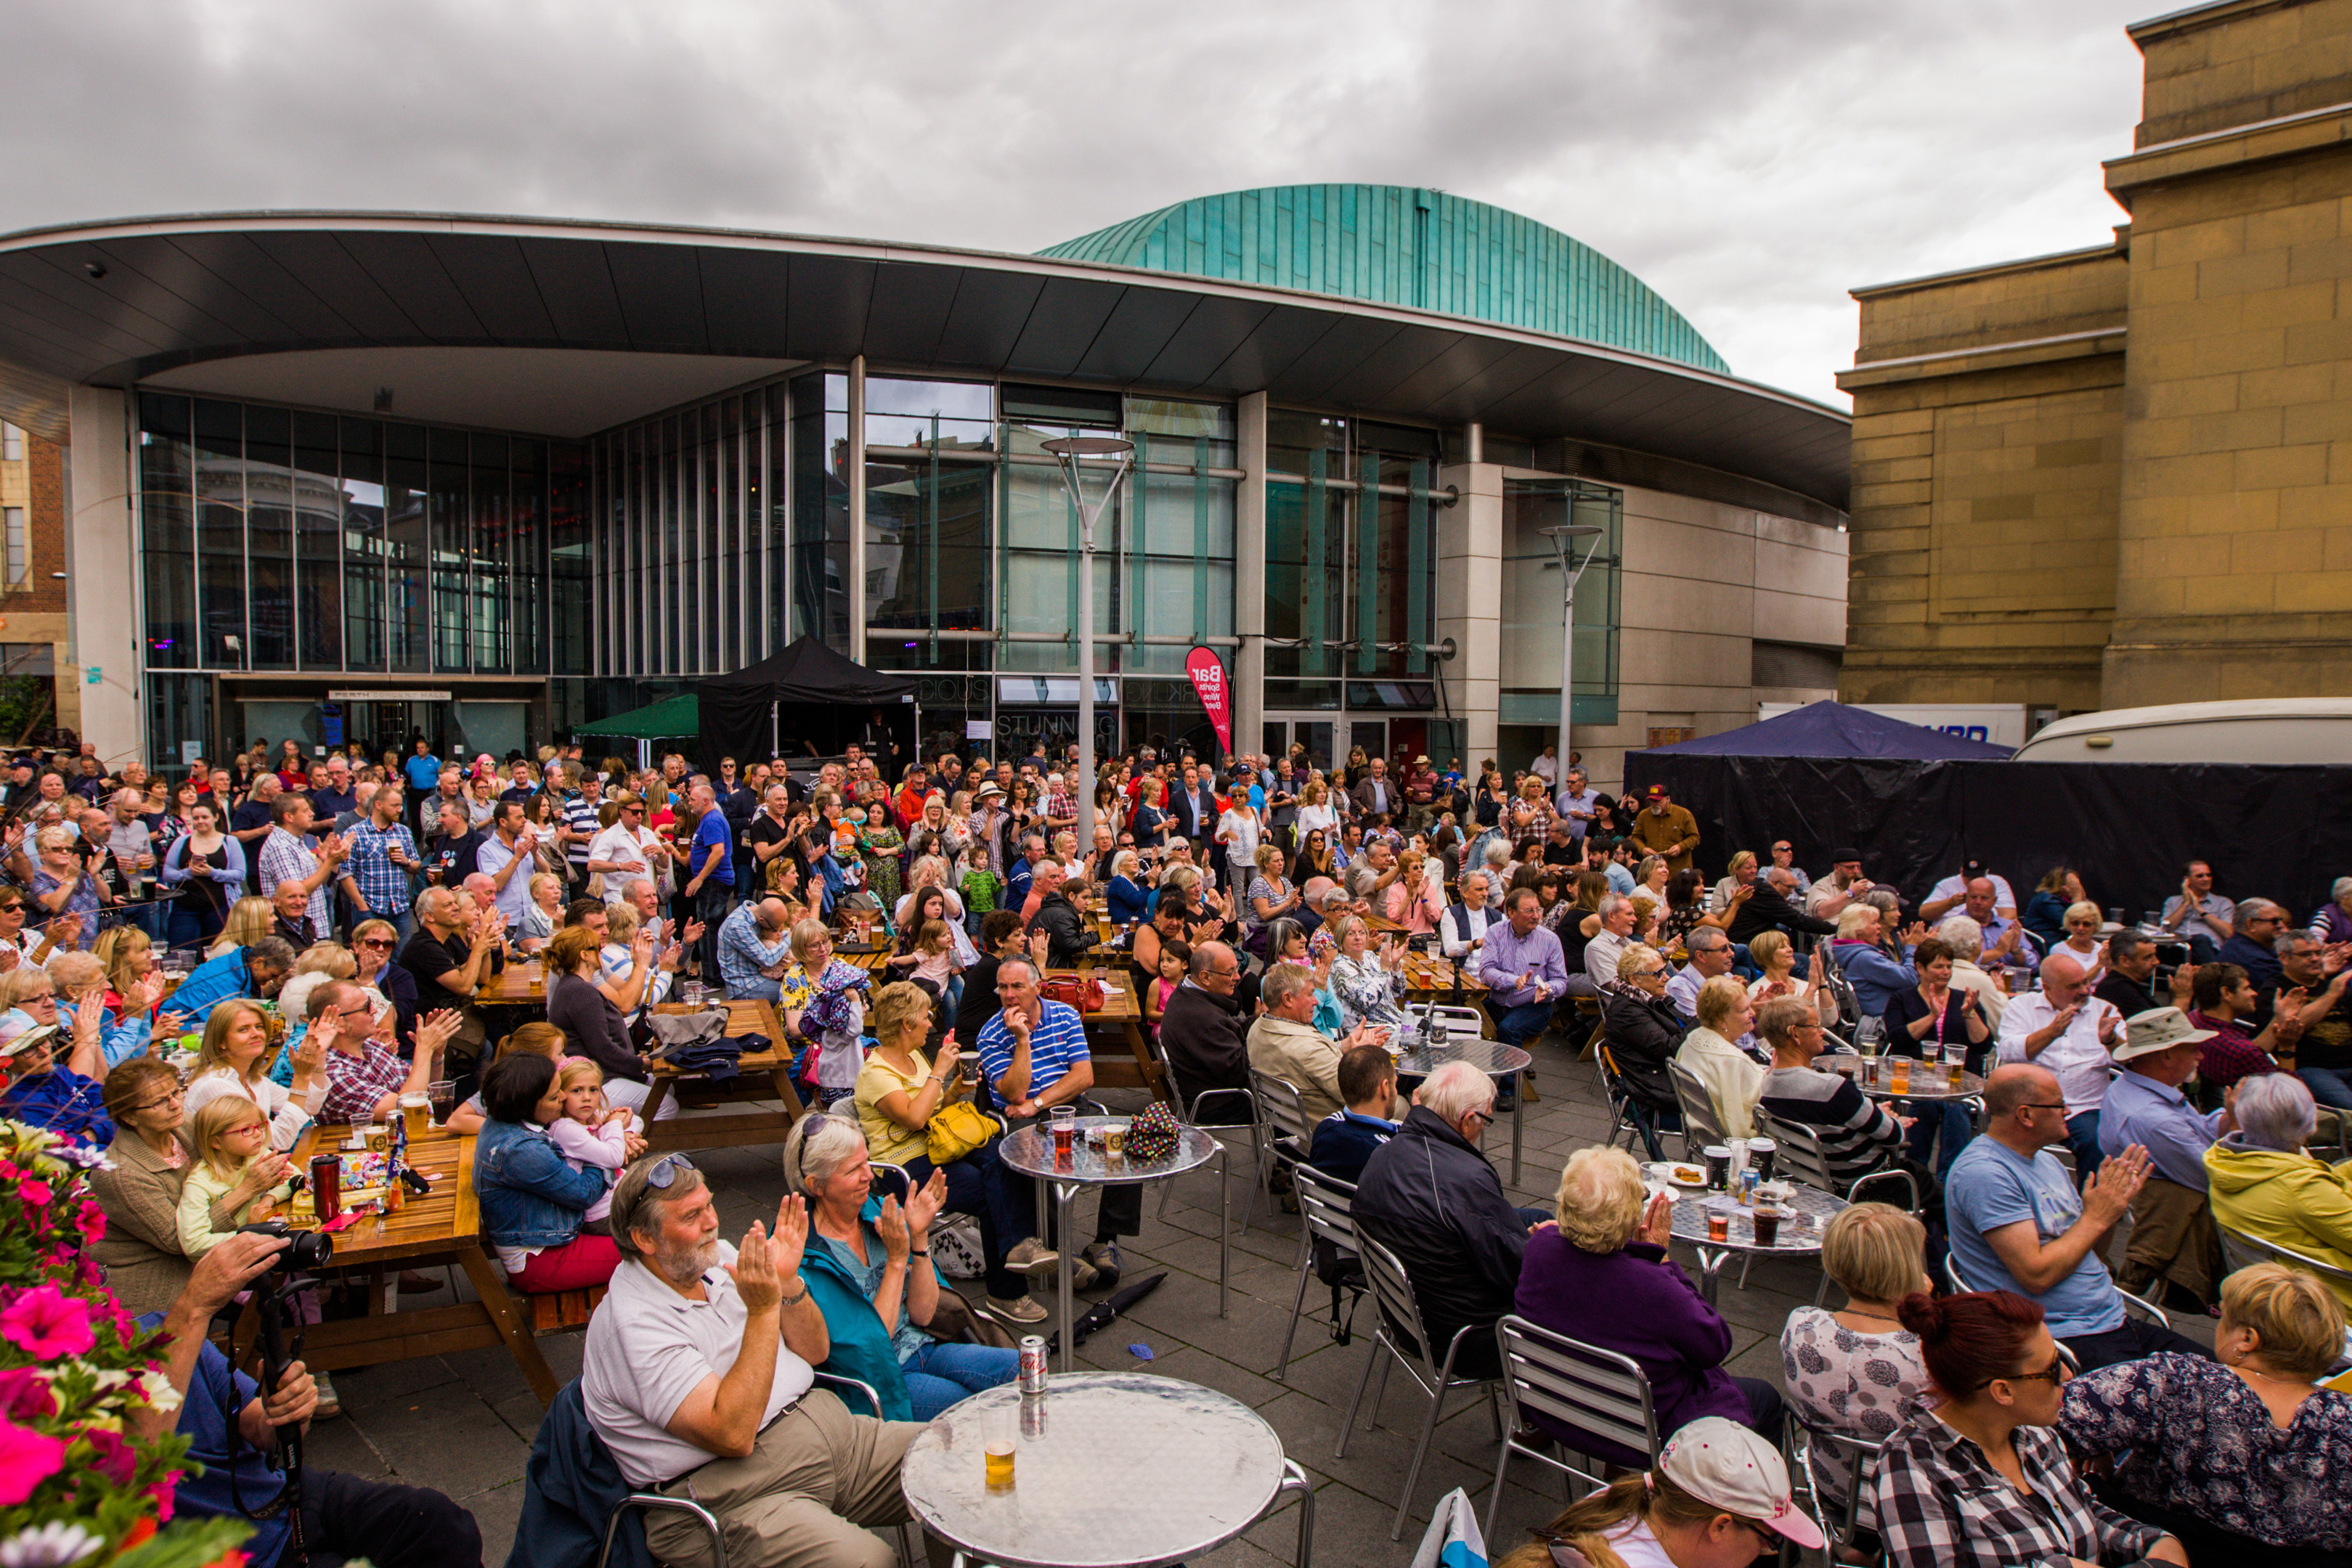 Crowds gather at Perth Concert Hall for 2015's Southern Fried Festival.